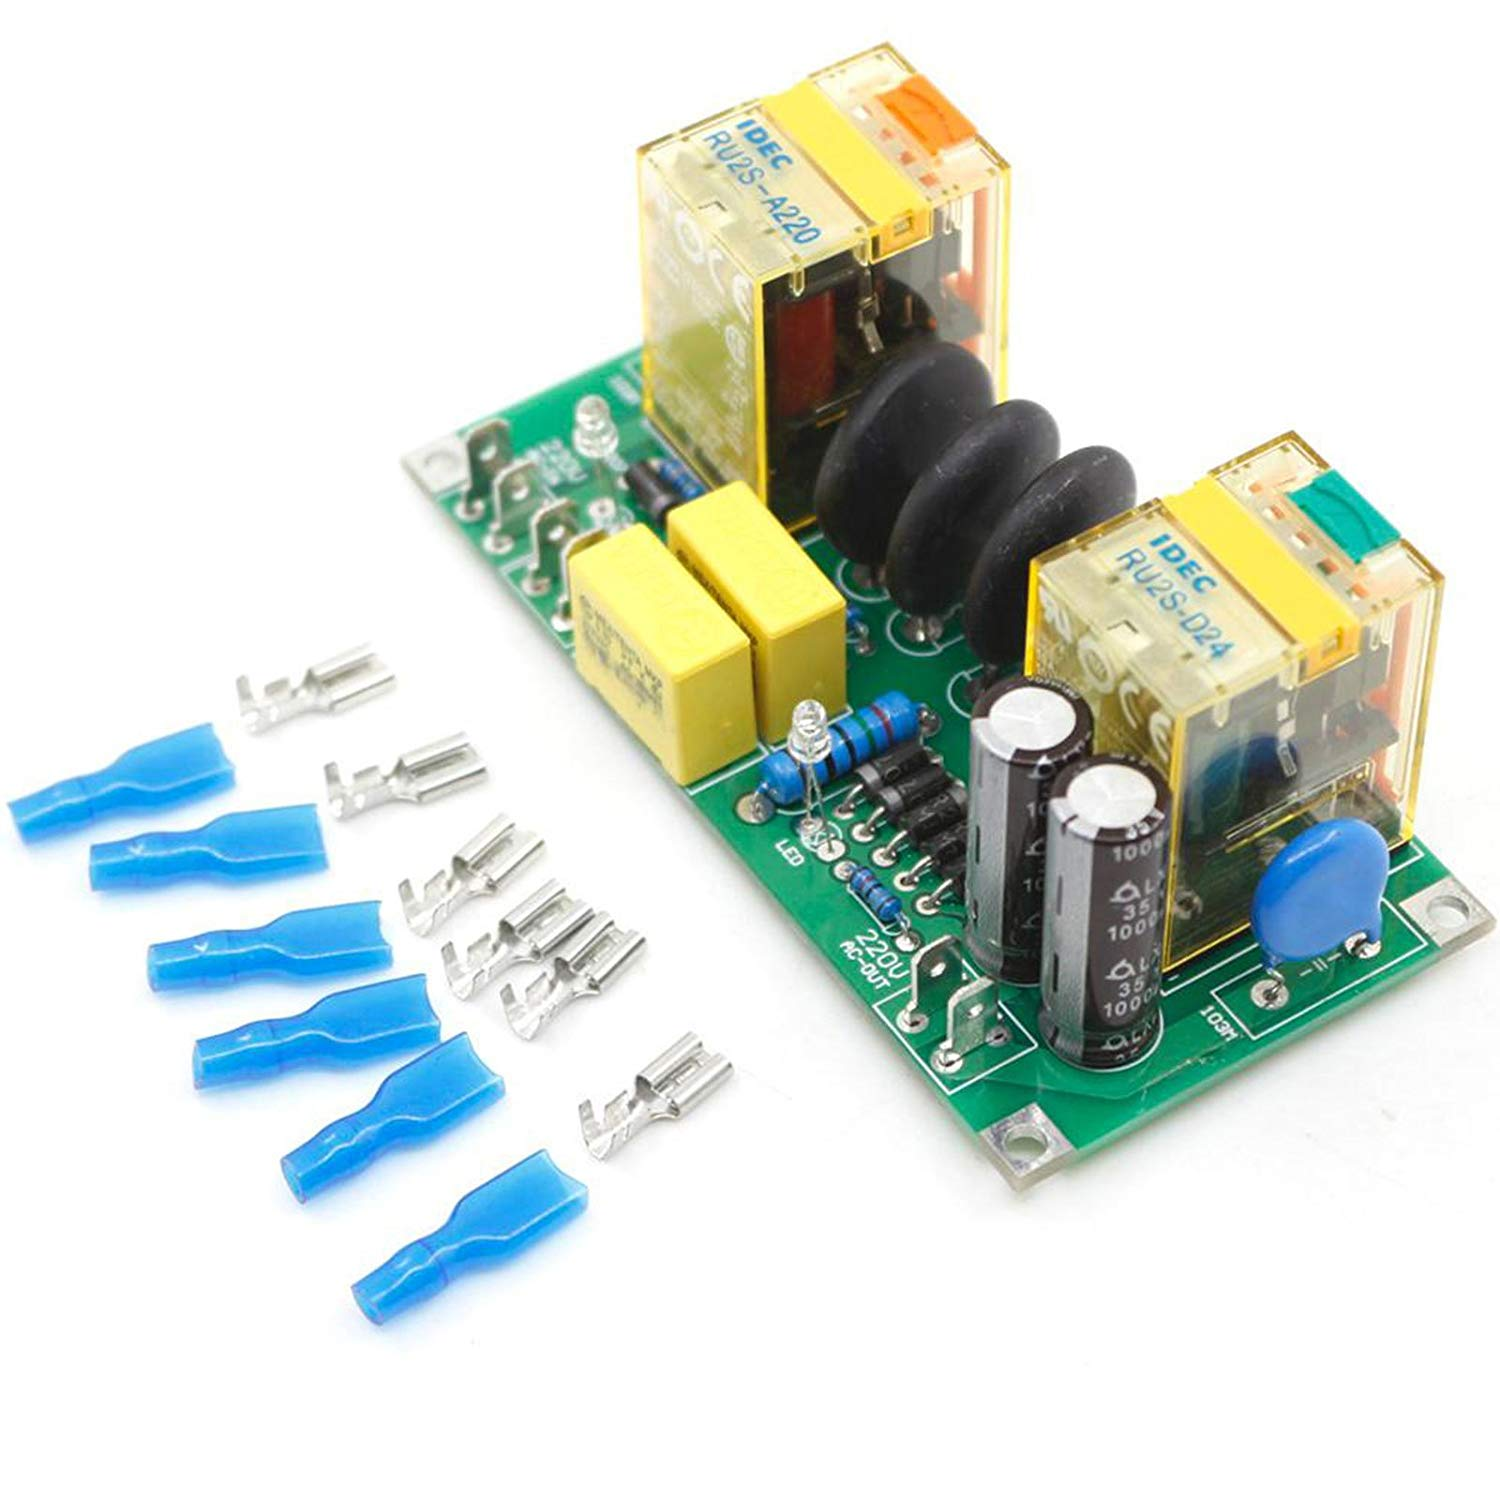 Cheap Current Source Power Supply Find Amp Capacitor Deals On Line At Get Quotations Class A Amplifier High Delay Soft Start Finished Plate 20a